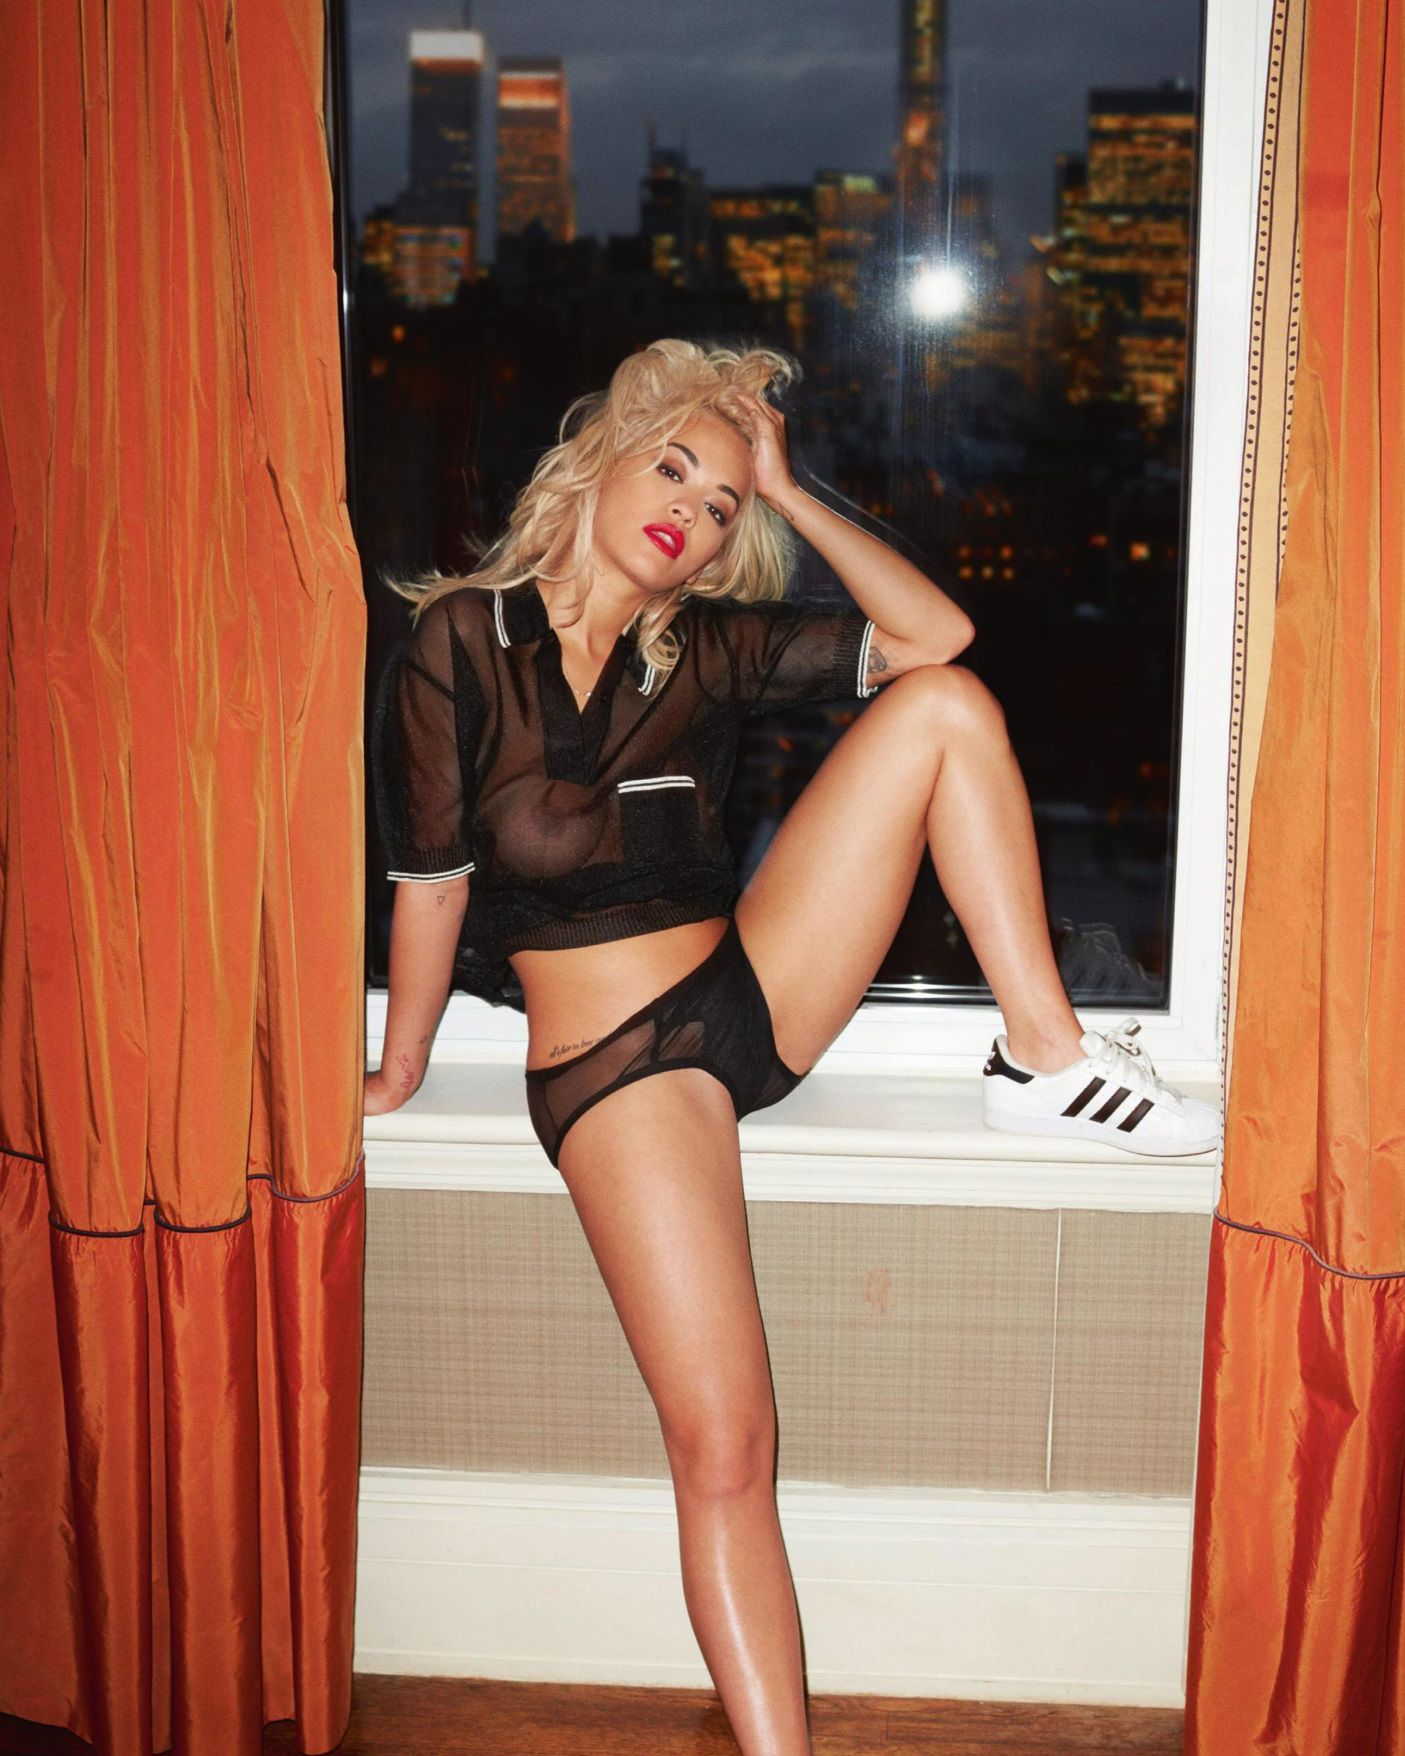 Nude Photos Of Rita Ora